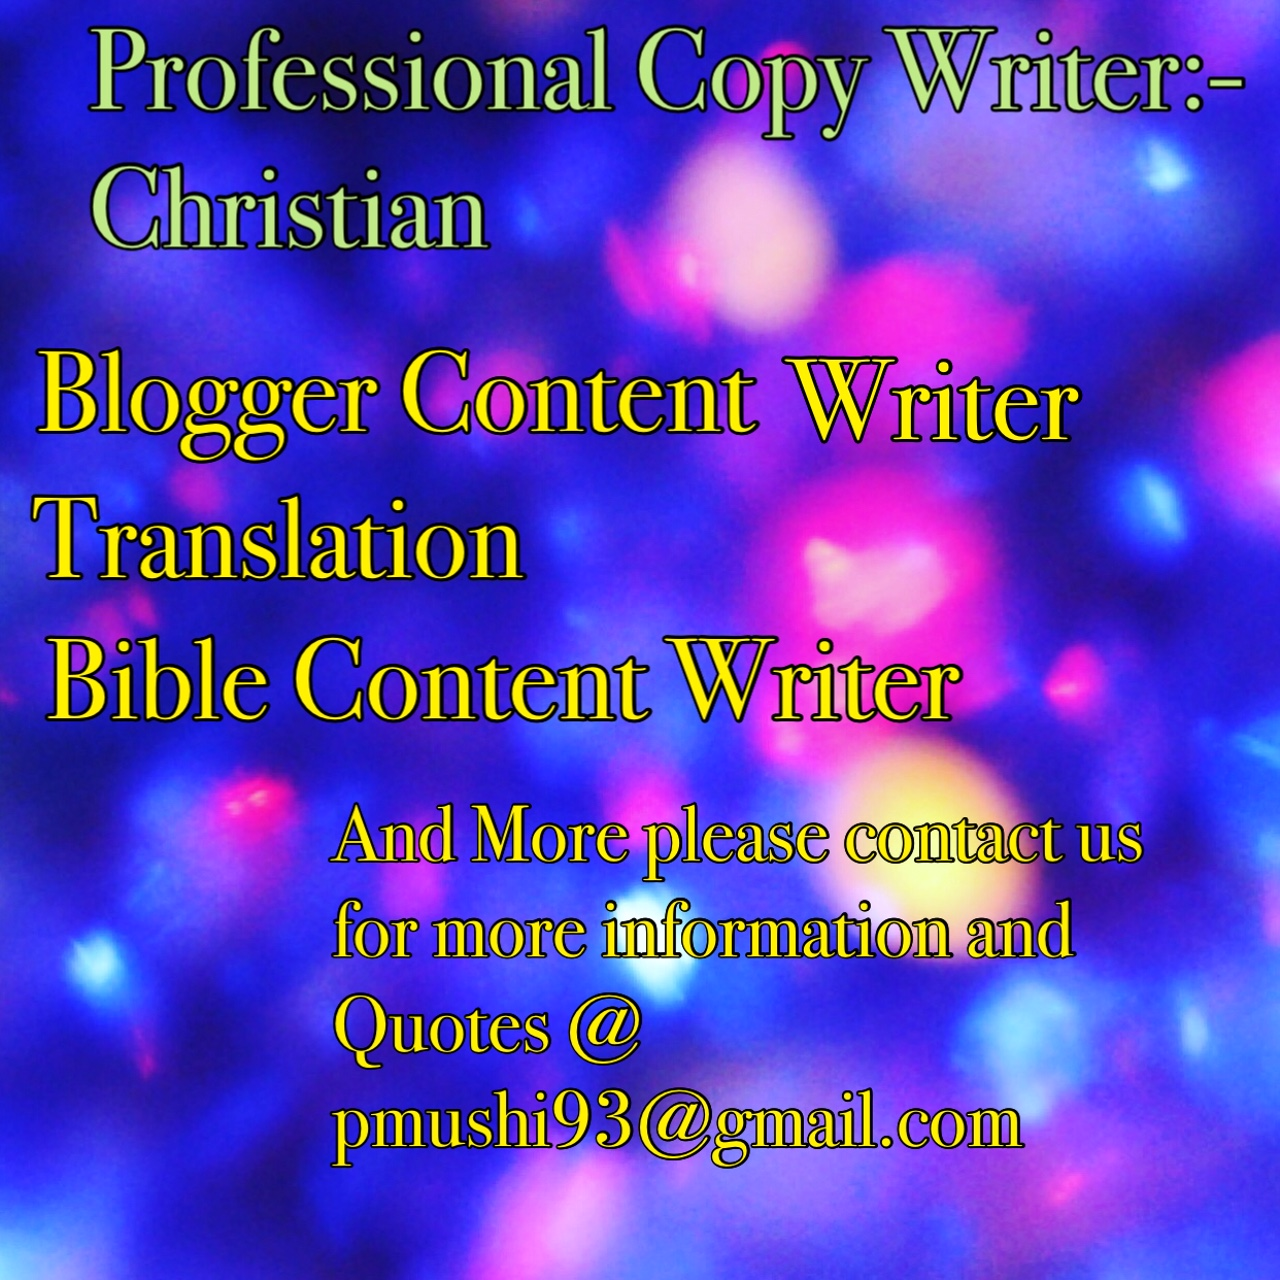 For Proffessional Christian Writting!